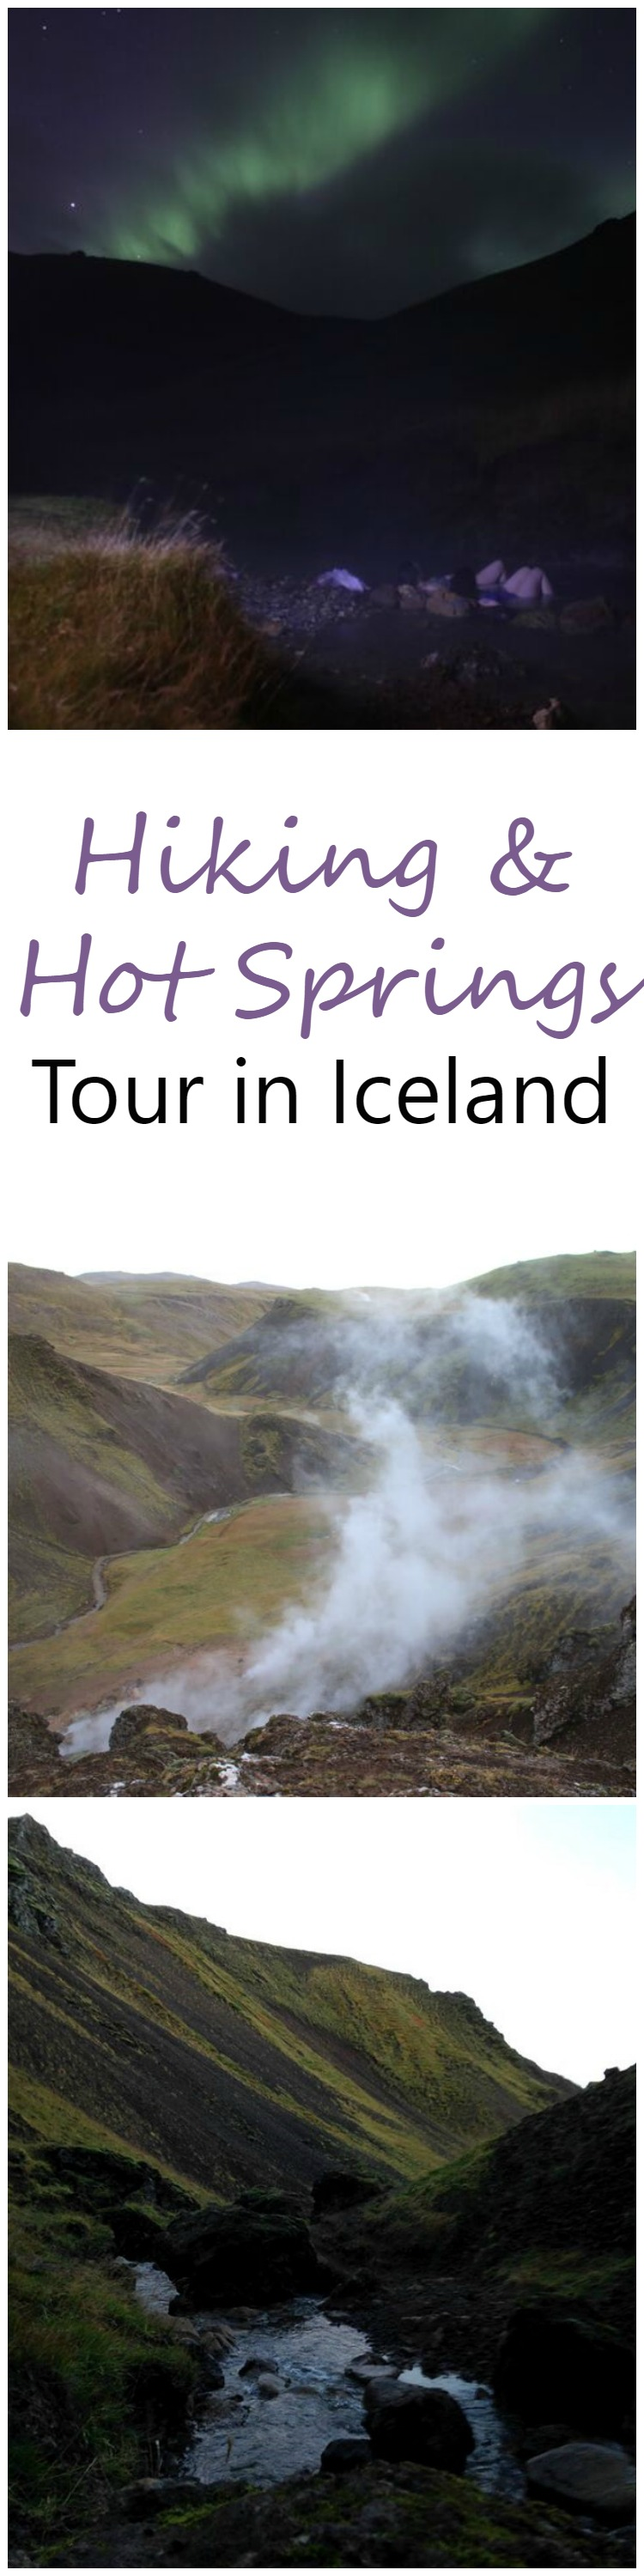 Hiking_and_Hot_Springs_Tour_with_Iceland_Activities